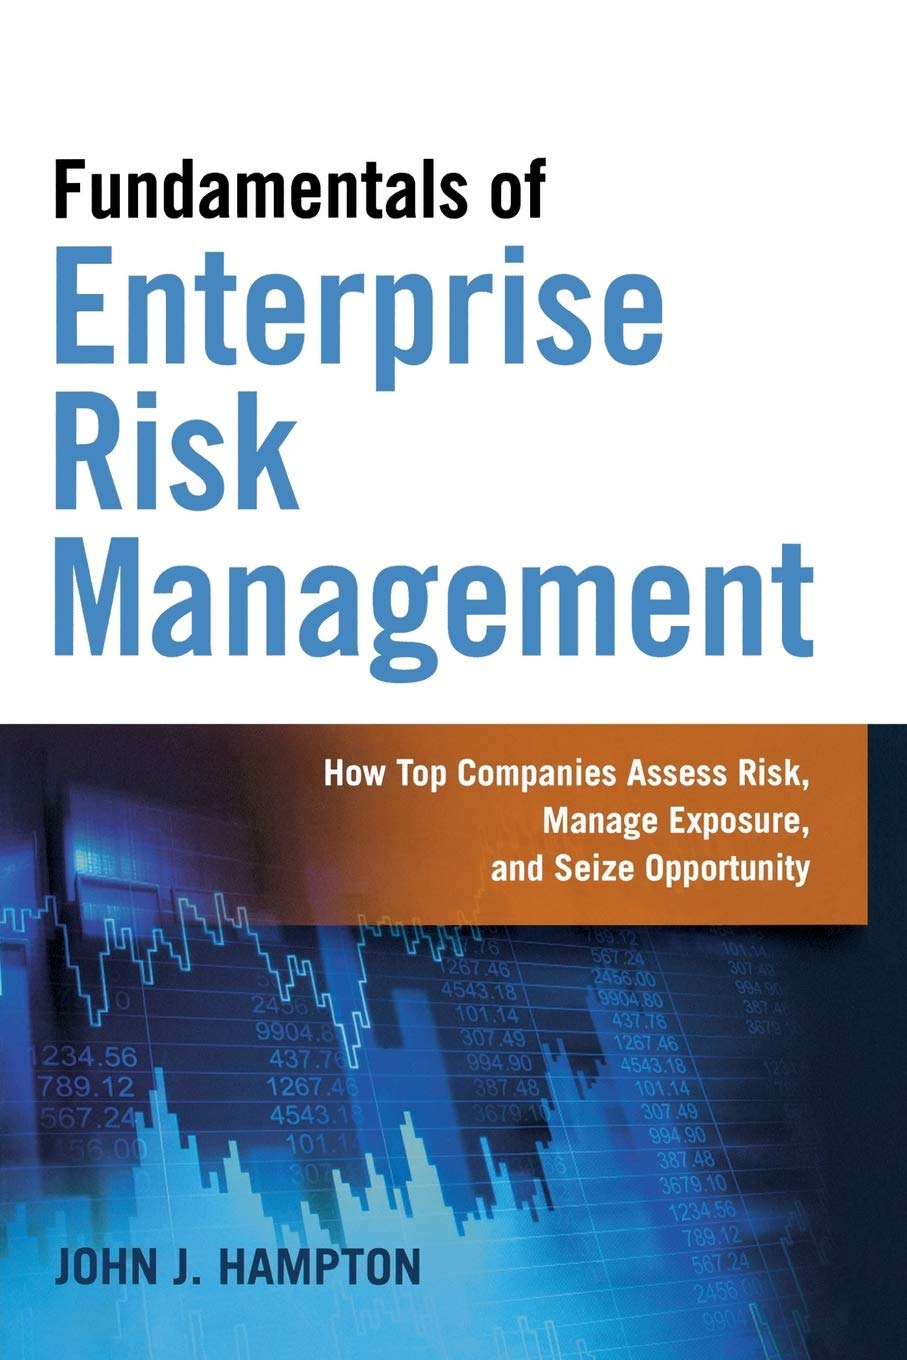 Image OfFundamentals Of Enterprise Risk Management: How Top Companies Assess Risk, Manage Exposure, And Seize Opportunity